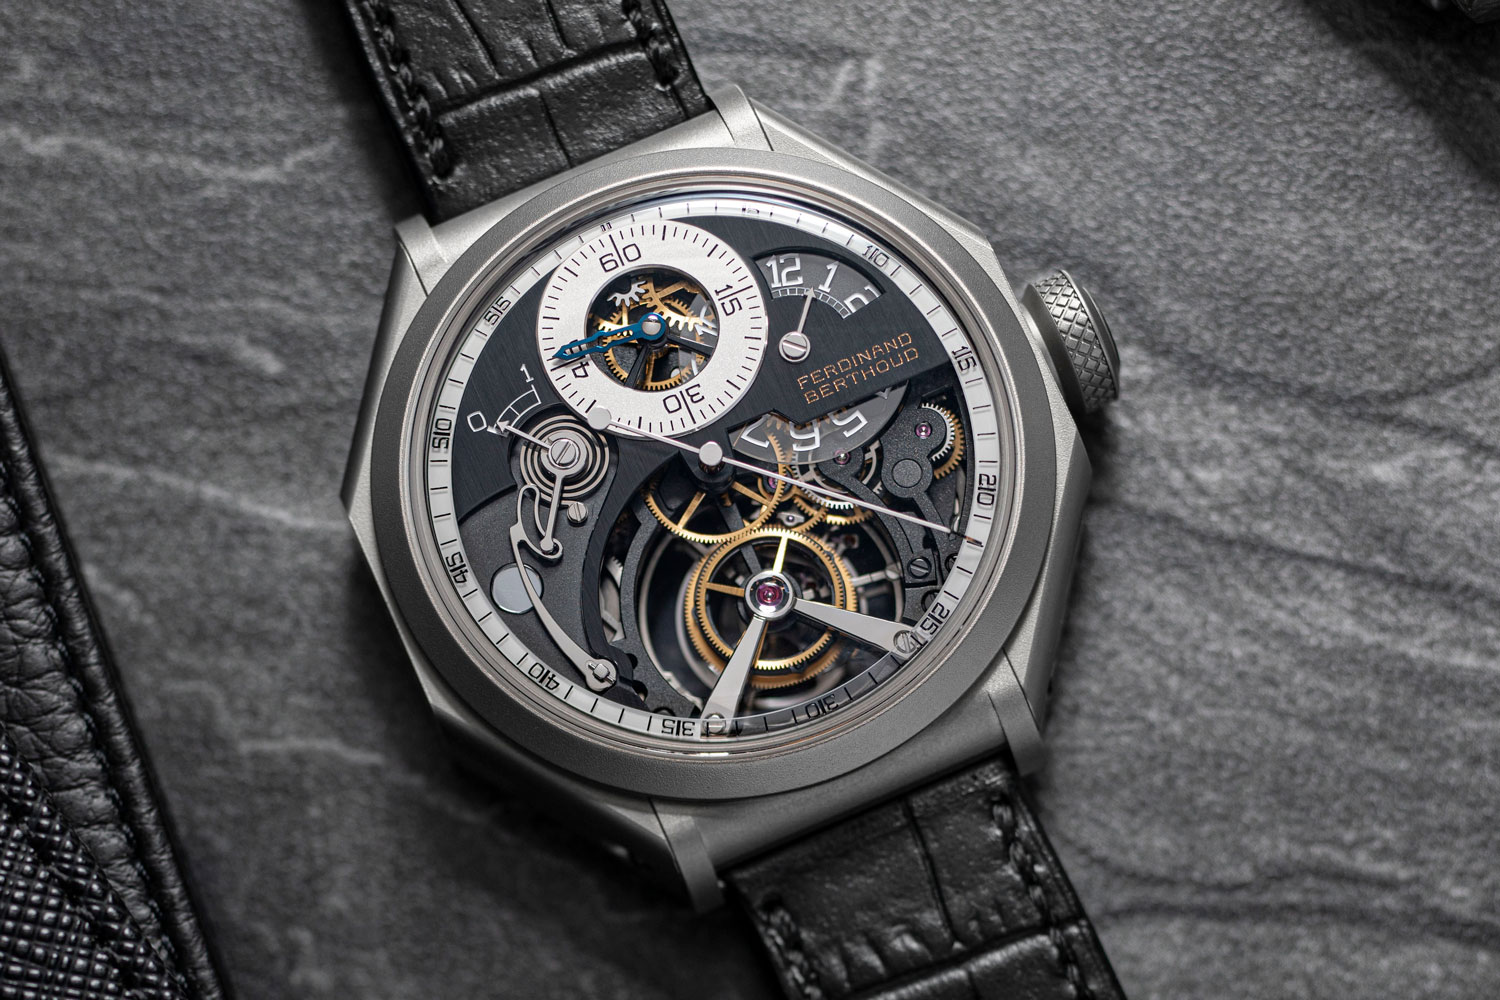 The Ferdinand Berthoud Régulateur Squelette FB RS has a massive seconds hand in the middle of the watch that harks back to regulators, which were clocks that had all each of the indications decentralized, usually focusing on the seconds to be as precise as possible; it is also this seconds hand that allows this watch to be COSC certified, as an actual chronometer (©Revolution)